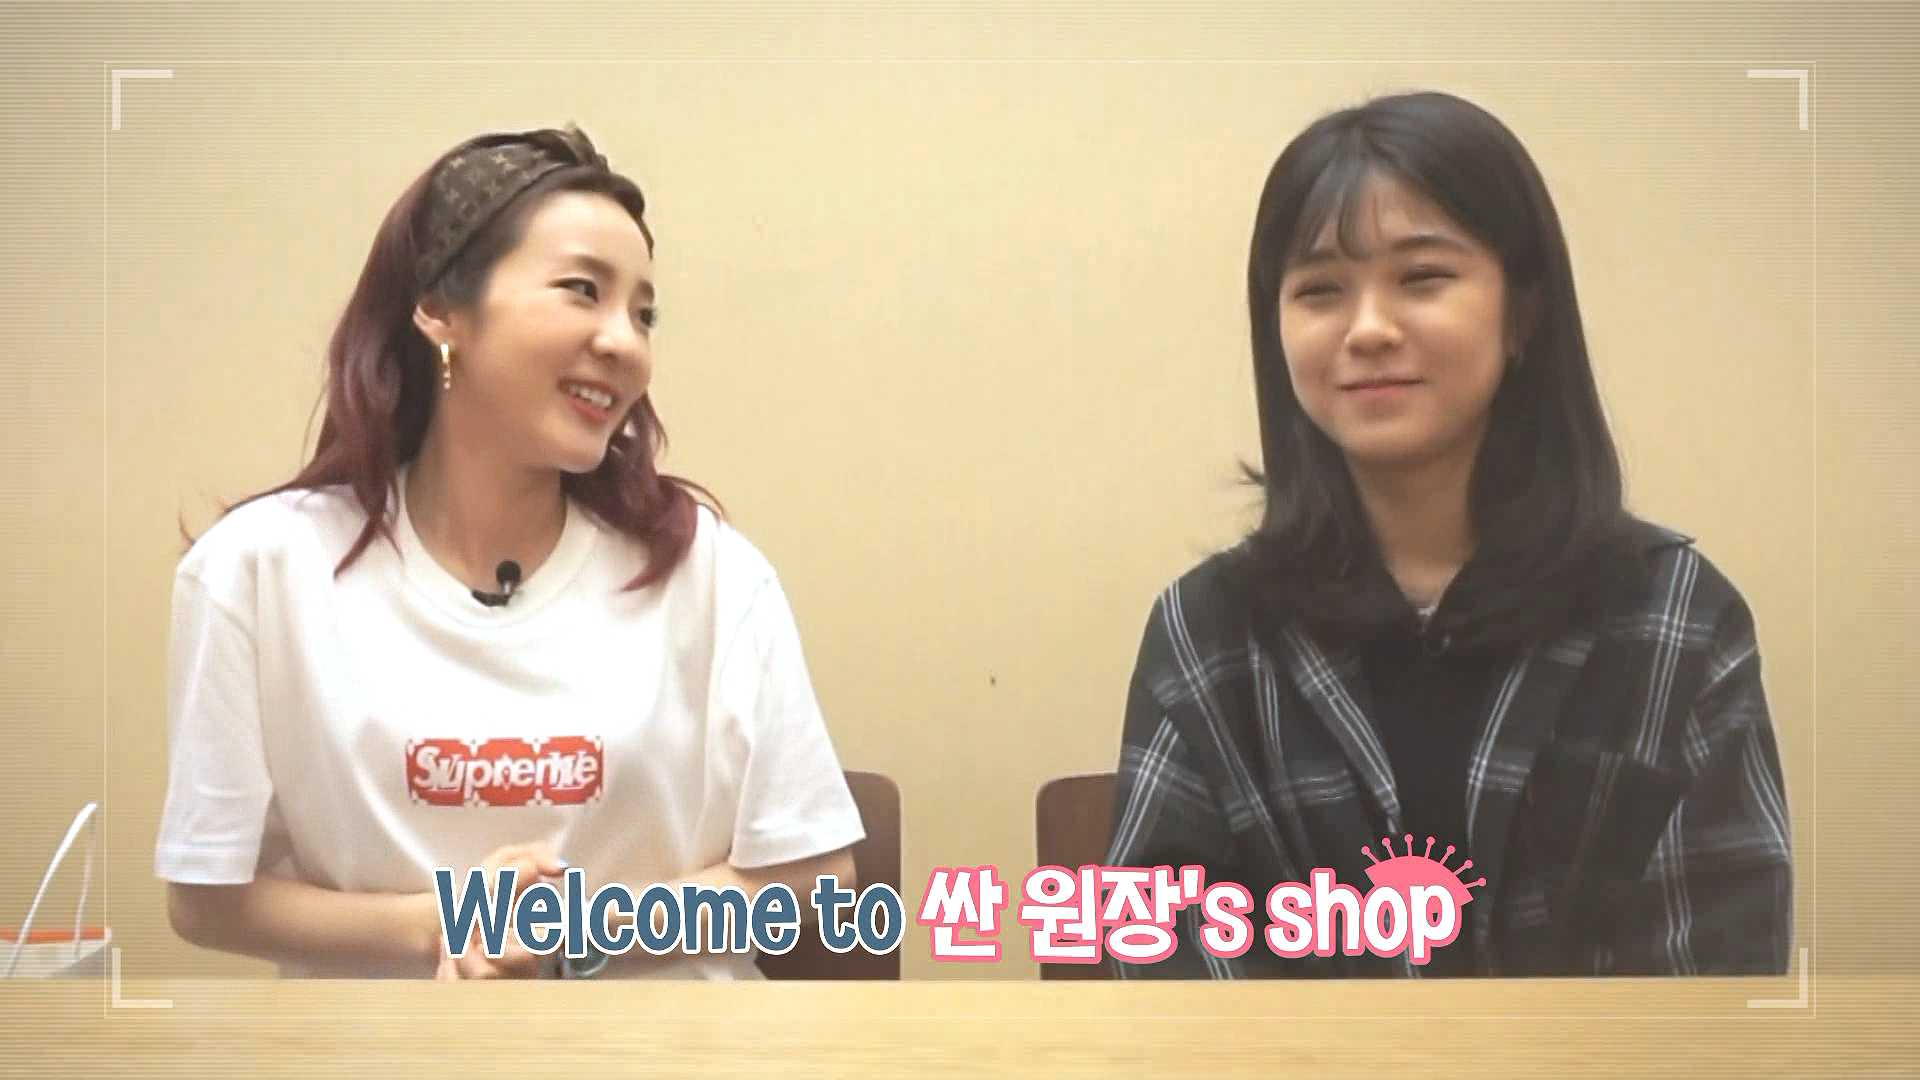 WELCOME TO 싼 원장's shop!